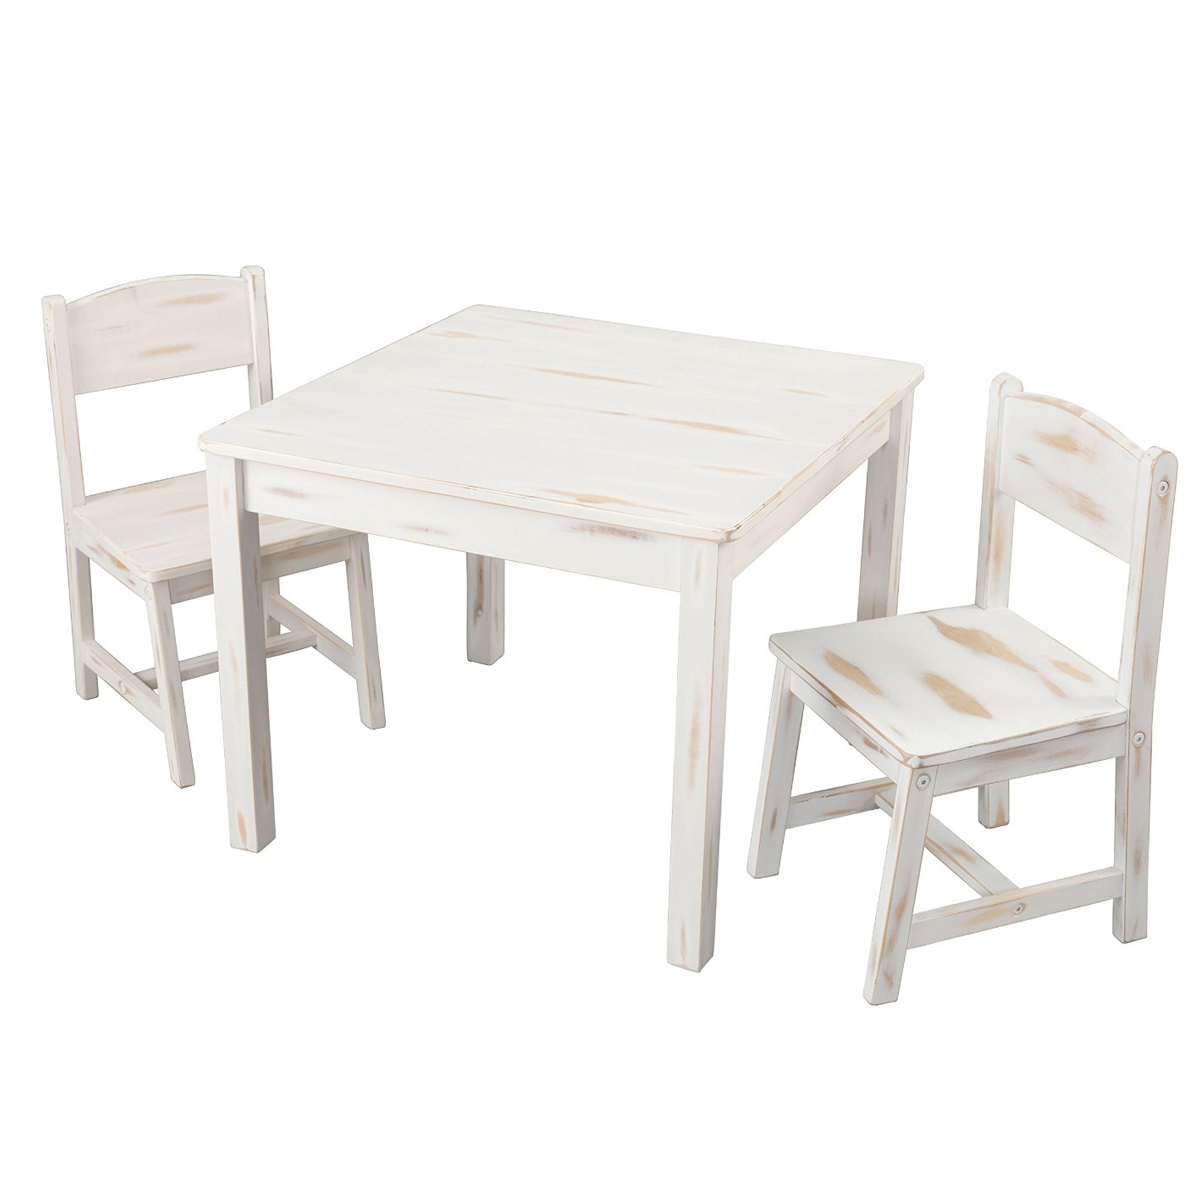 Phenomenal Kidkraft Aspen Table And Chairs In Distressed Wood Finish Machost Co Dining Chair Design Ideas Machostcouk